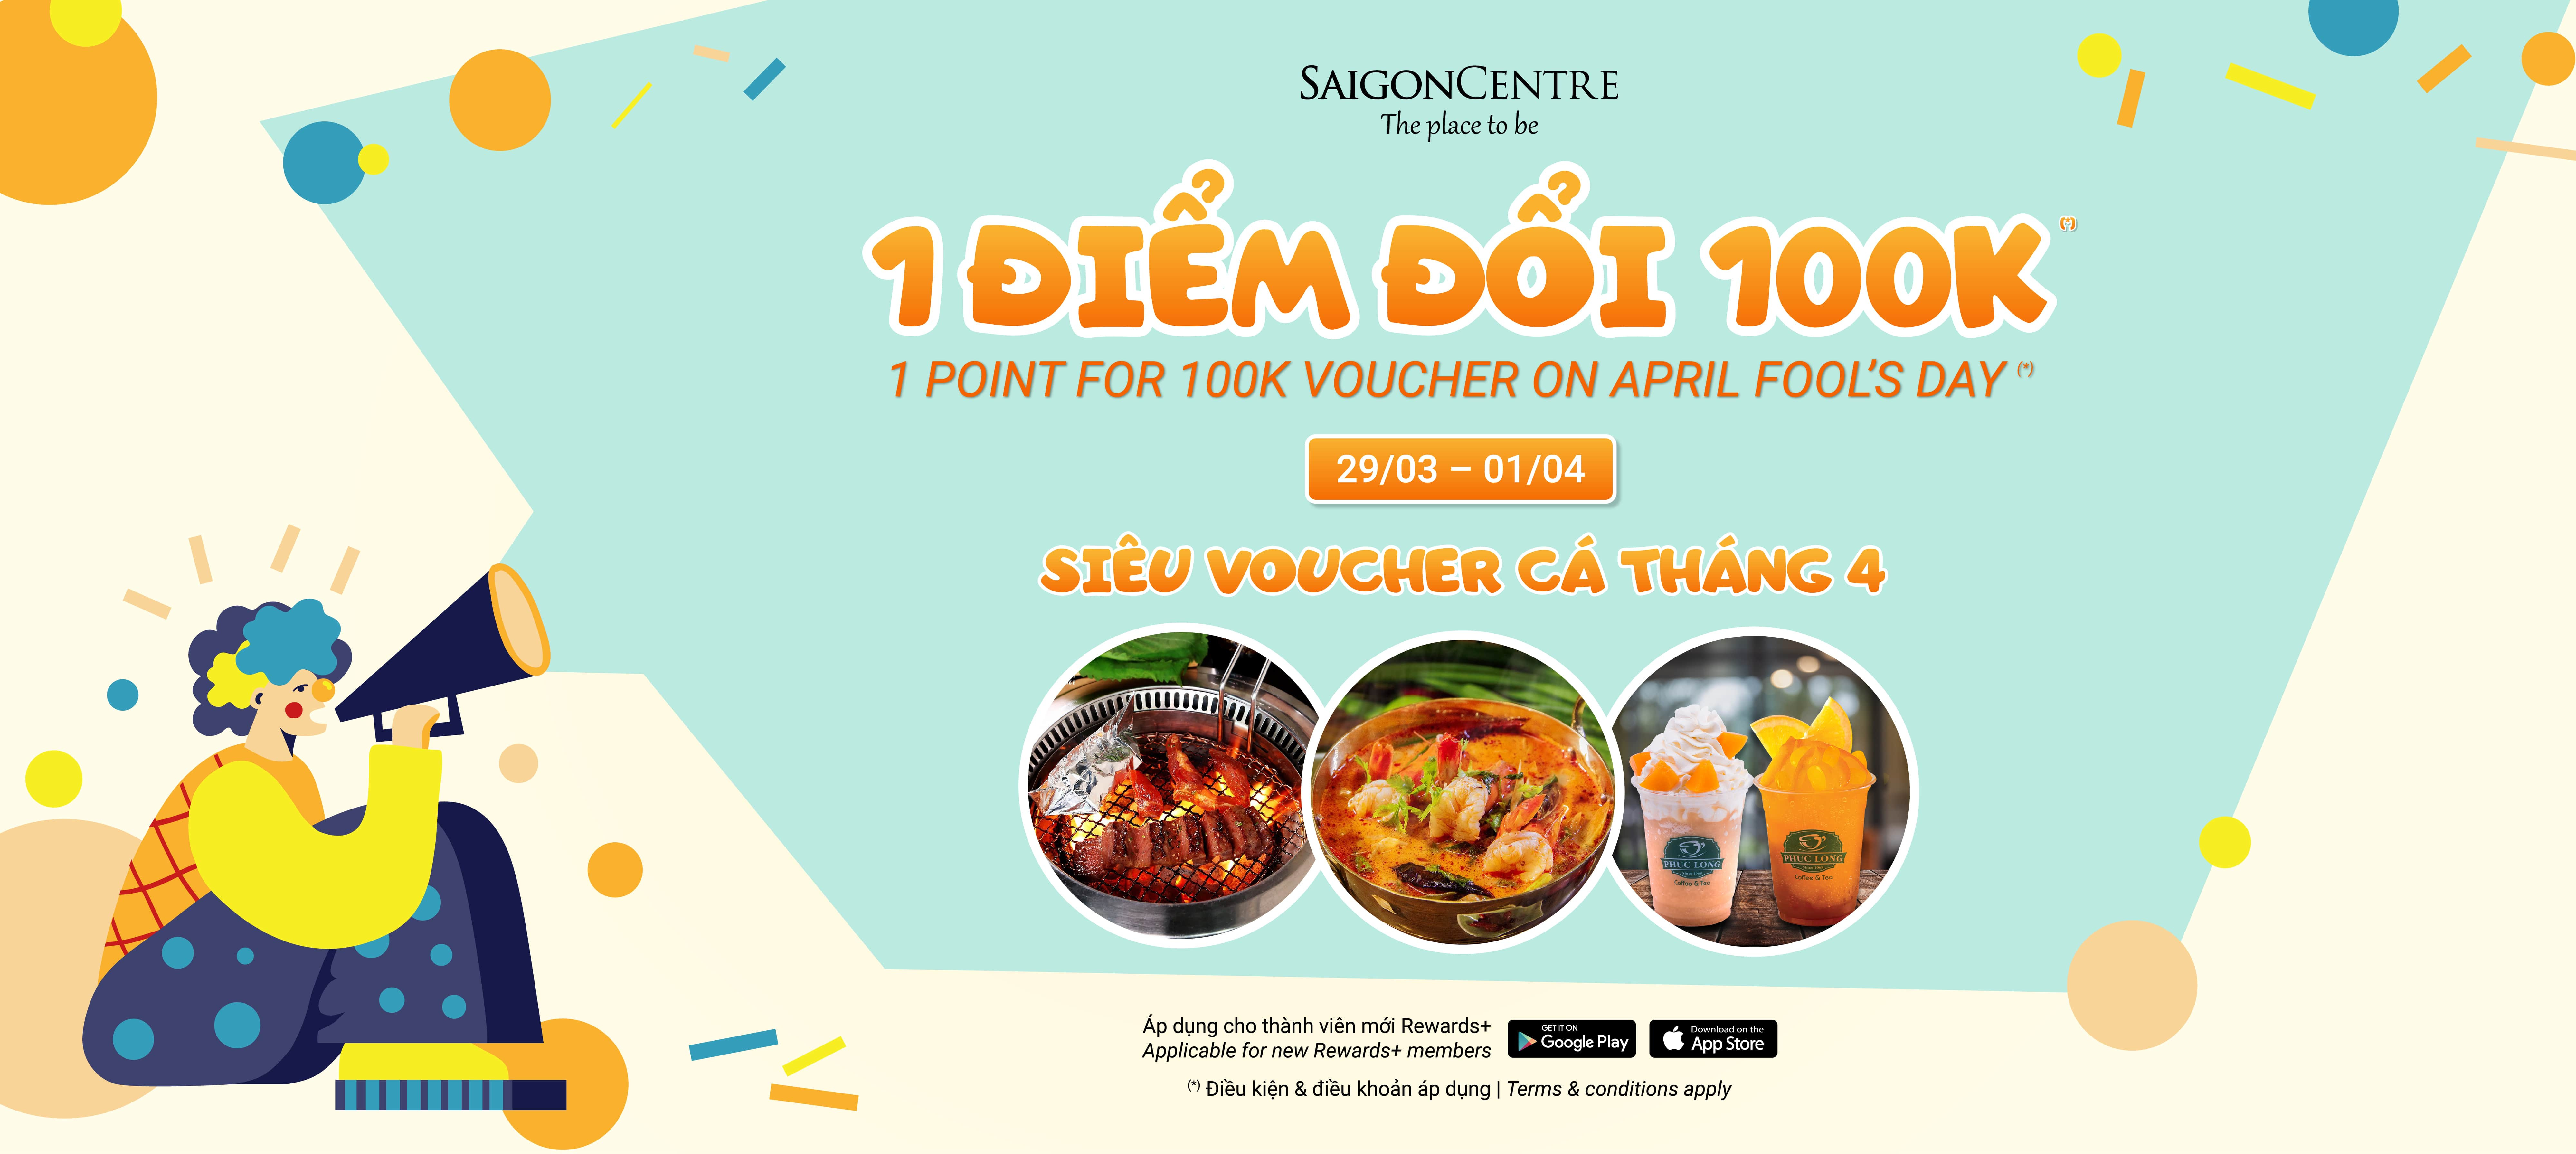 1 REWARDS+ POINT FOR VND100K VOUCHER ON APRIL FOOL'S DAY